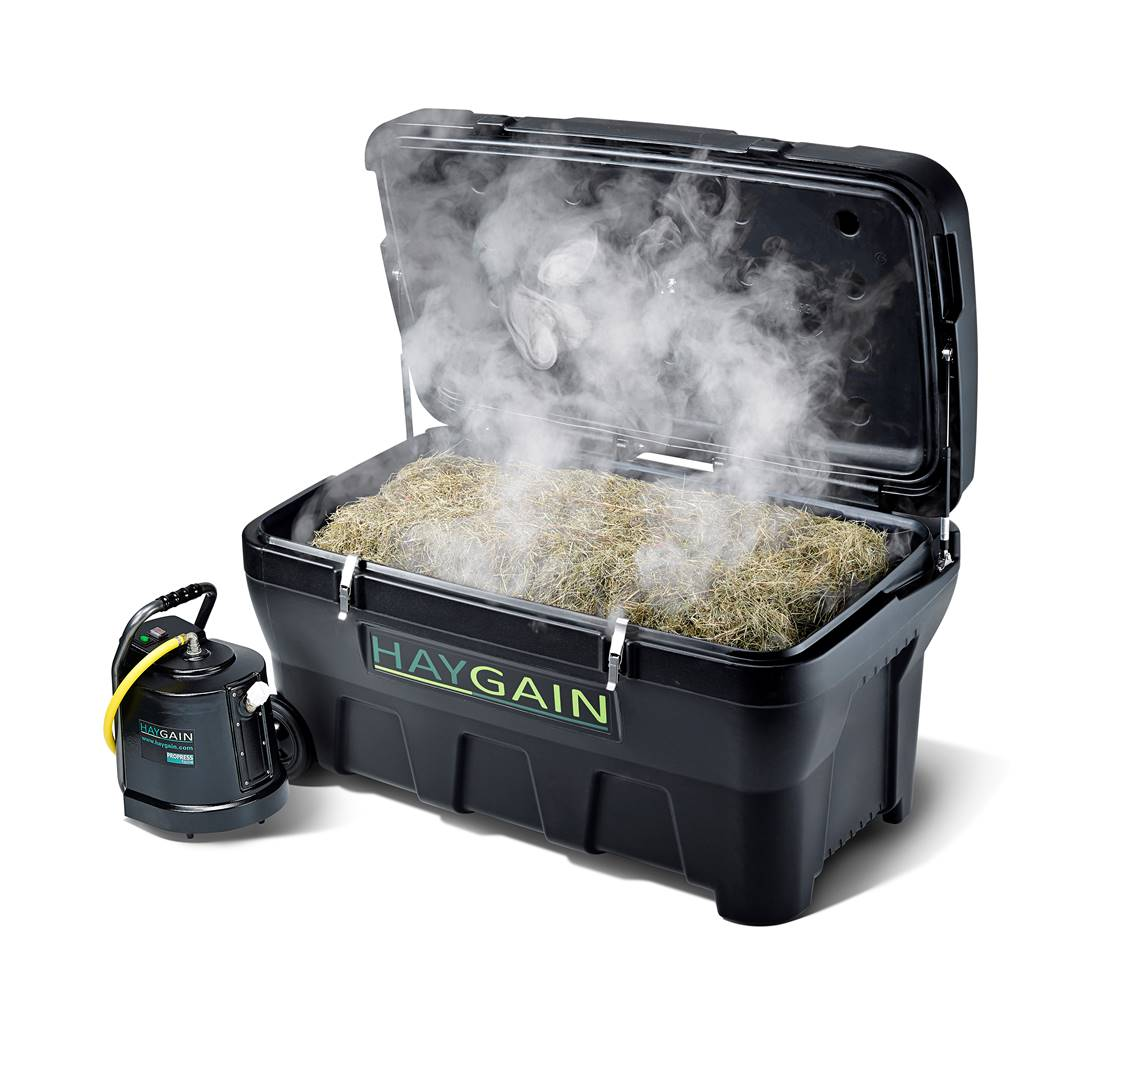 http://www.cotswoldsport.co.uk/Main-Shop/pics/e/Haygain/HG2000%20open%20steaming%20bale%20w%20PB%20on%20white.jpg